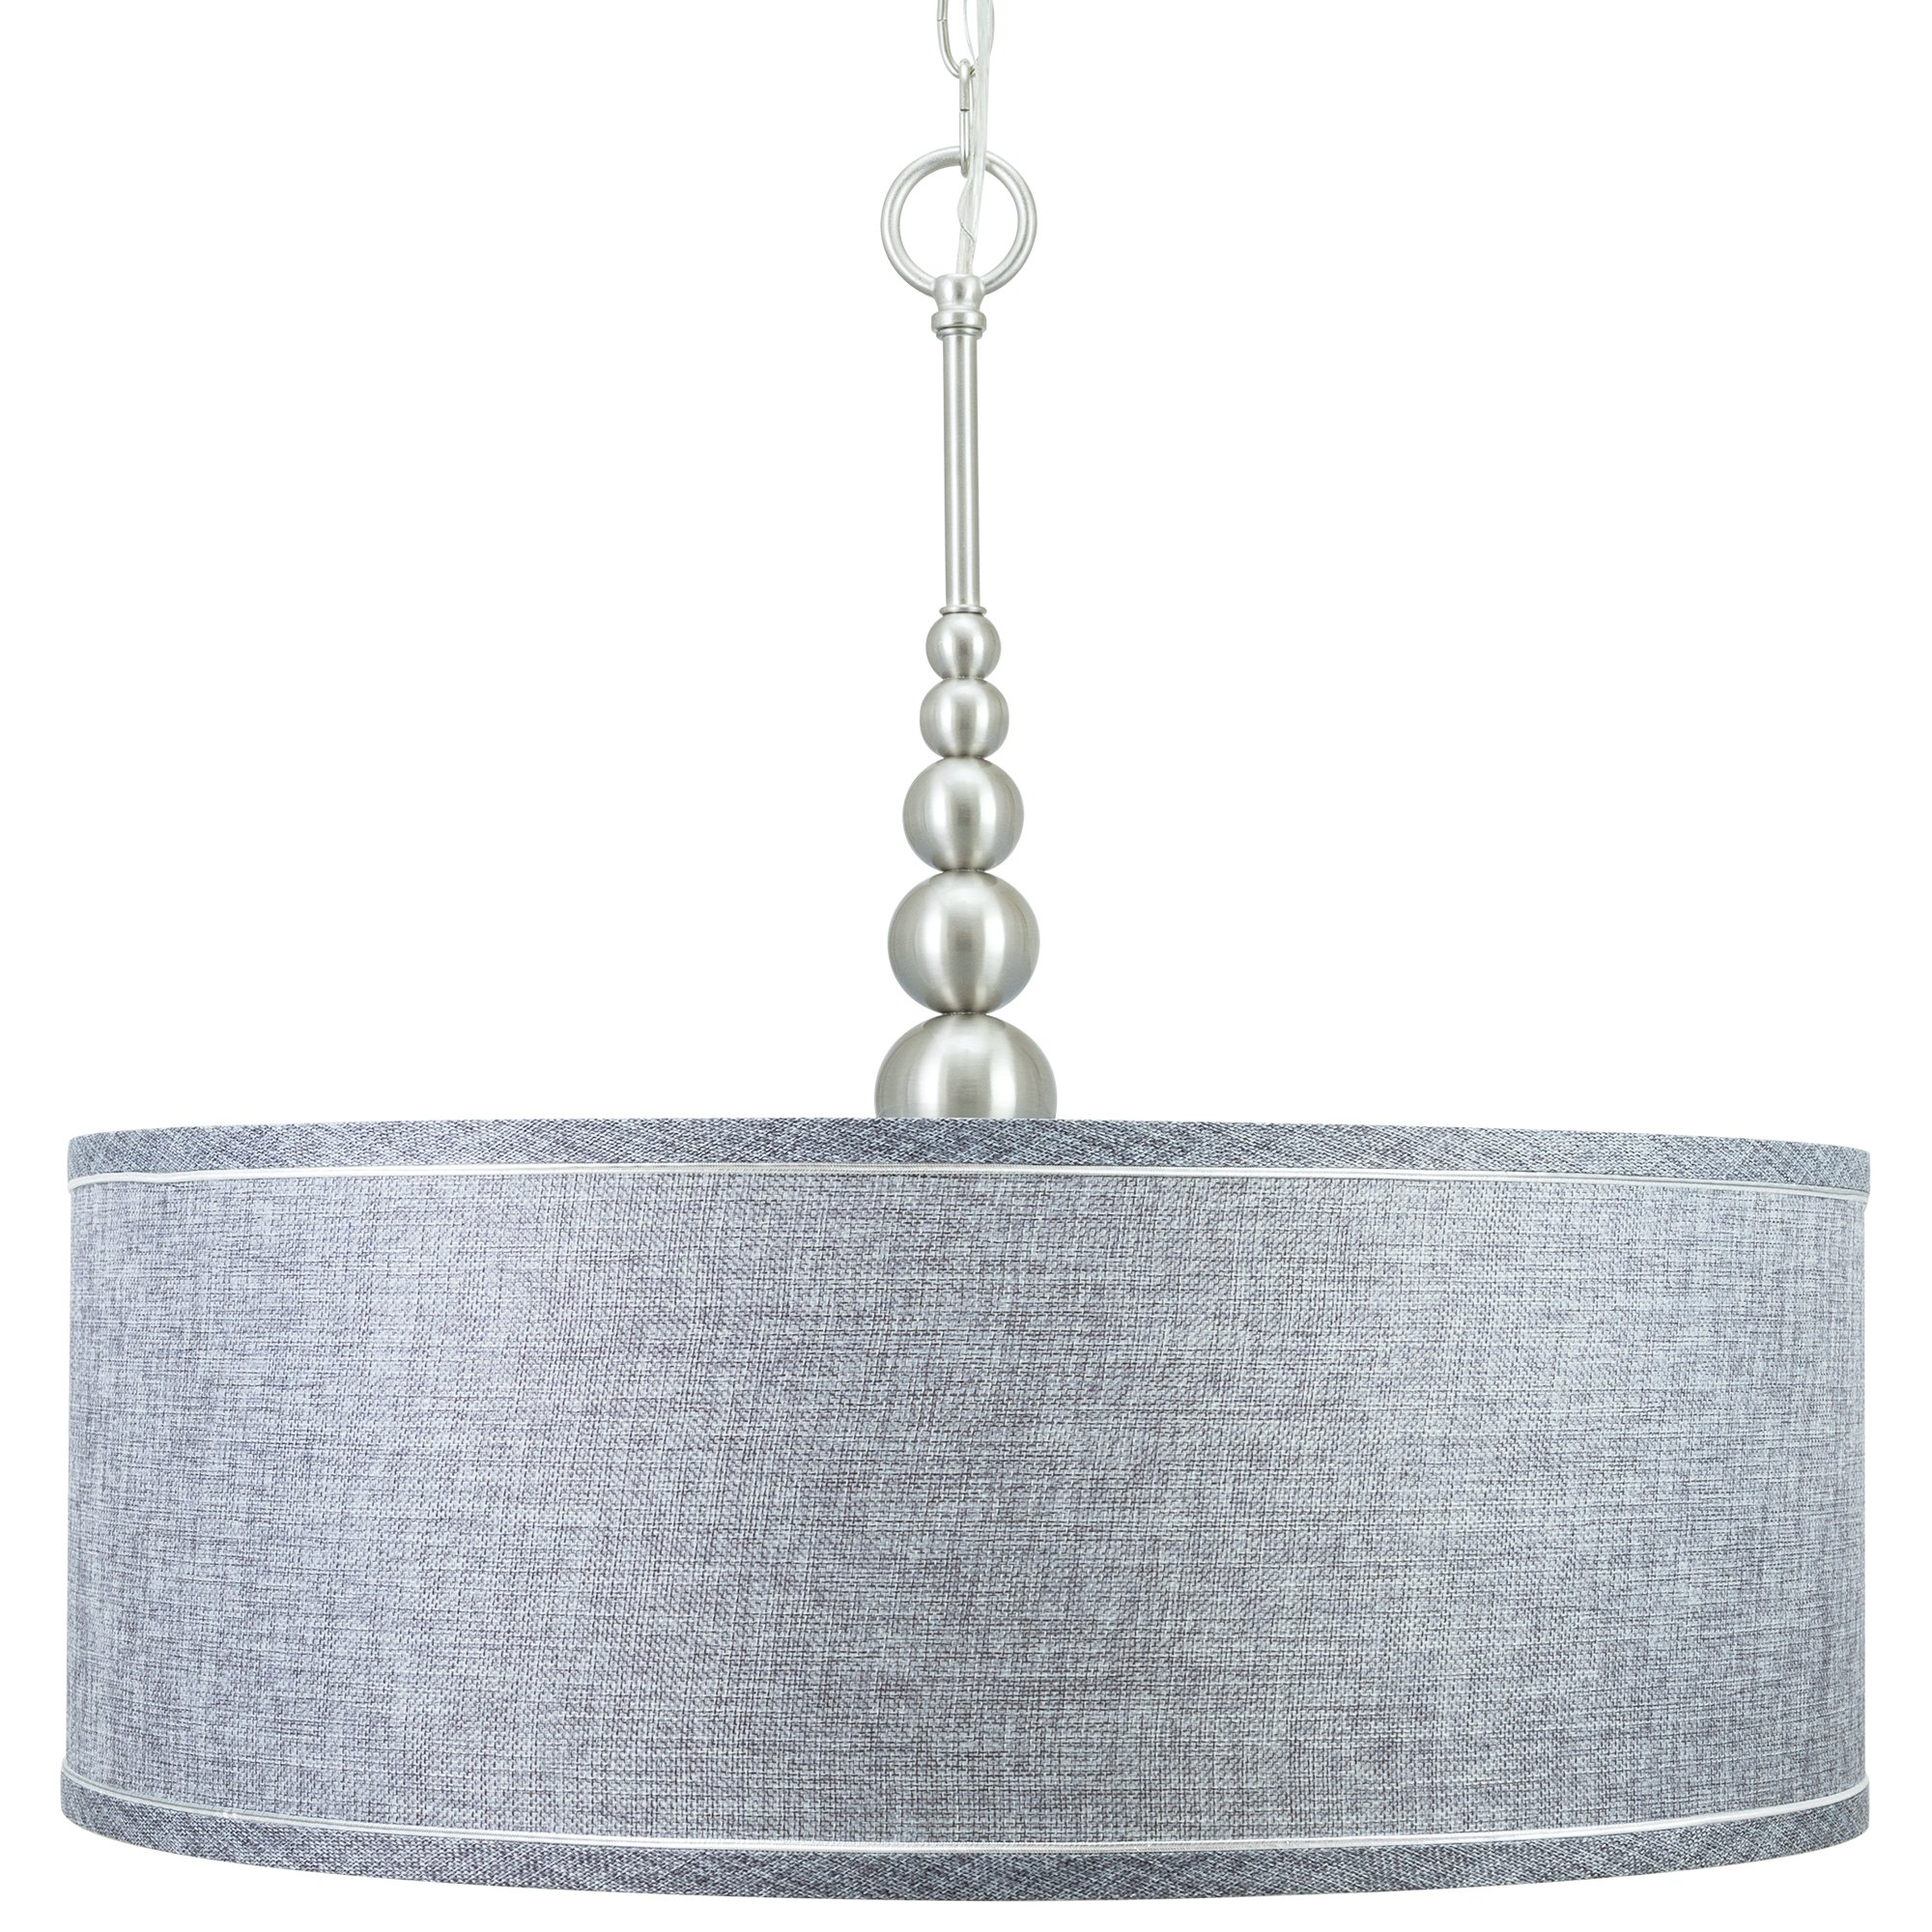 in rust wood inch mini cfm grey item shown light iron finish fredrick ramond chandelier middlefield wide and accent